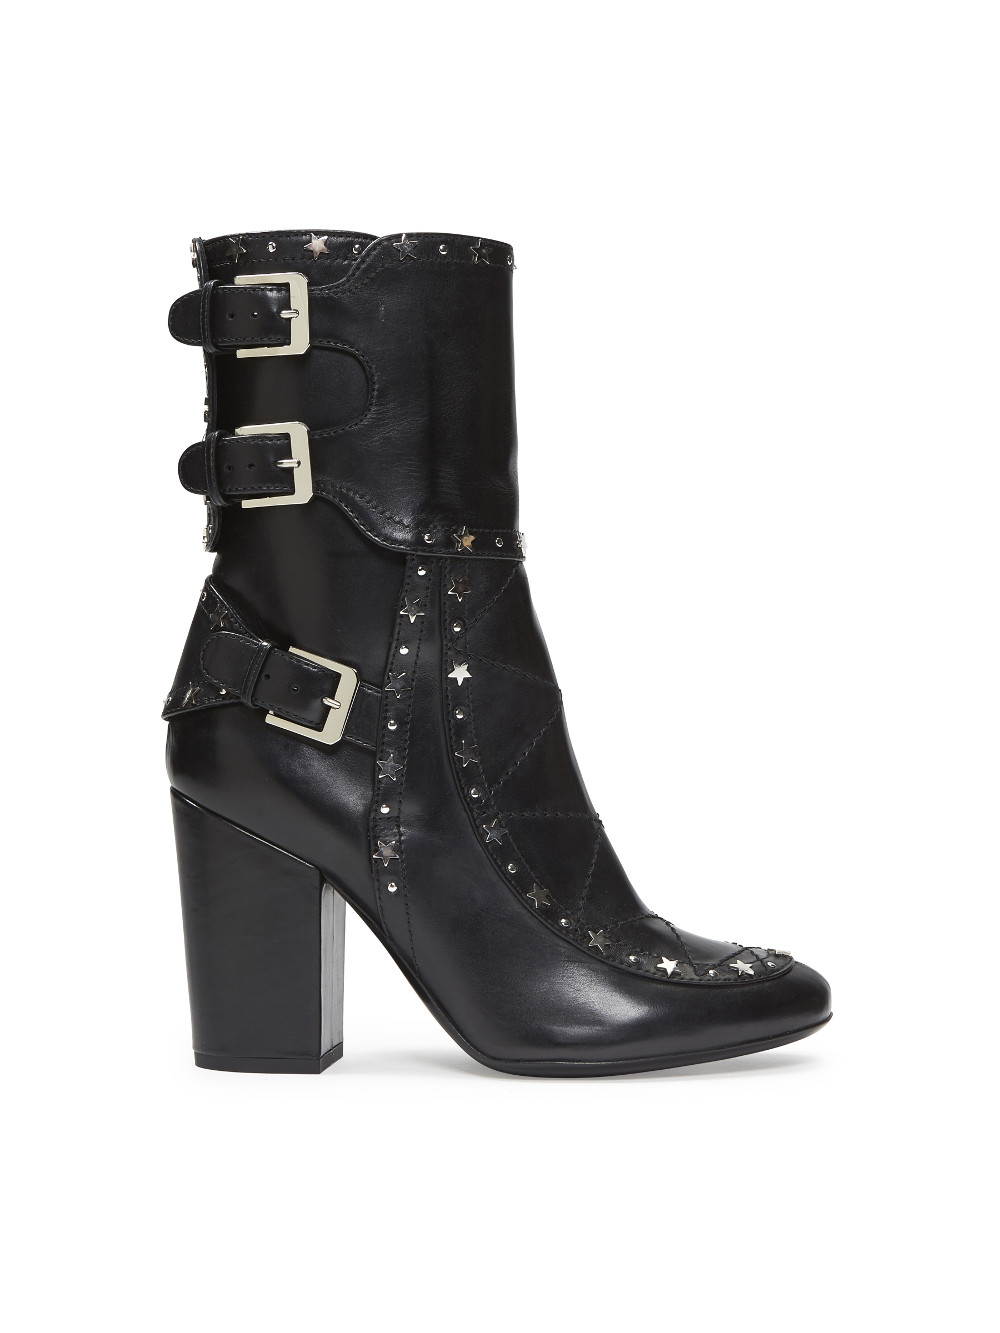 Bottines Merli - Laurence Dacade